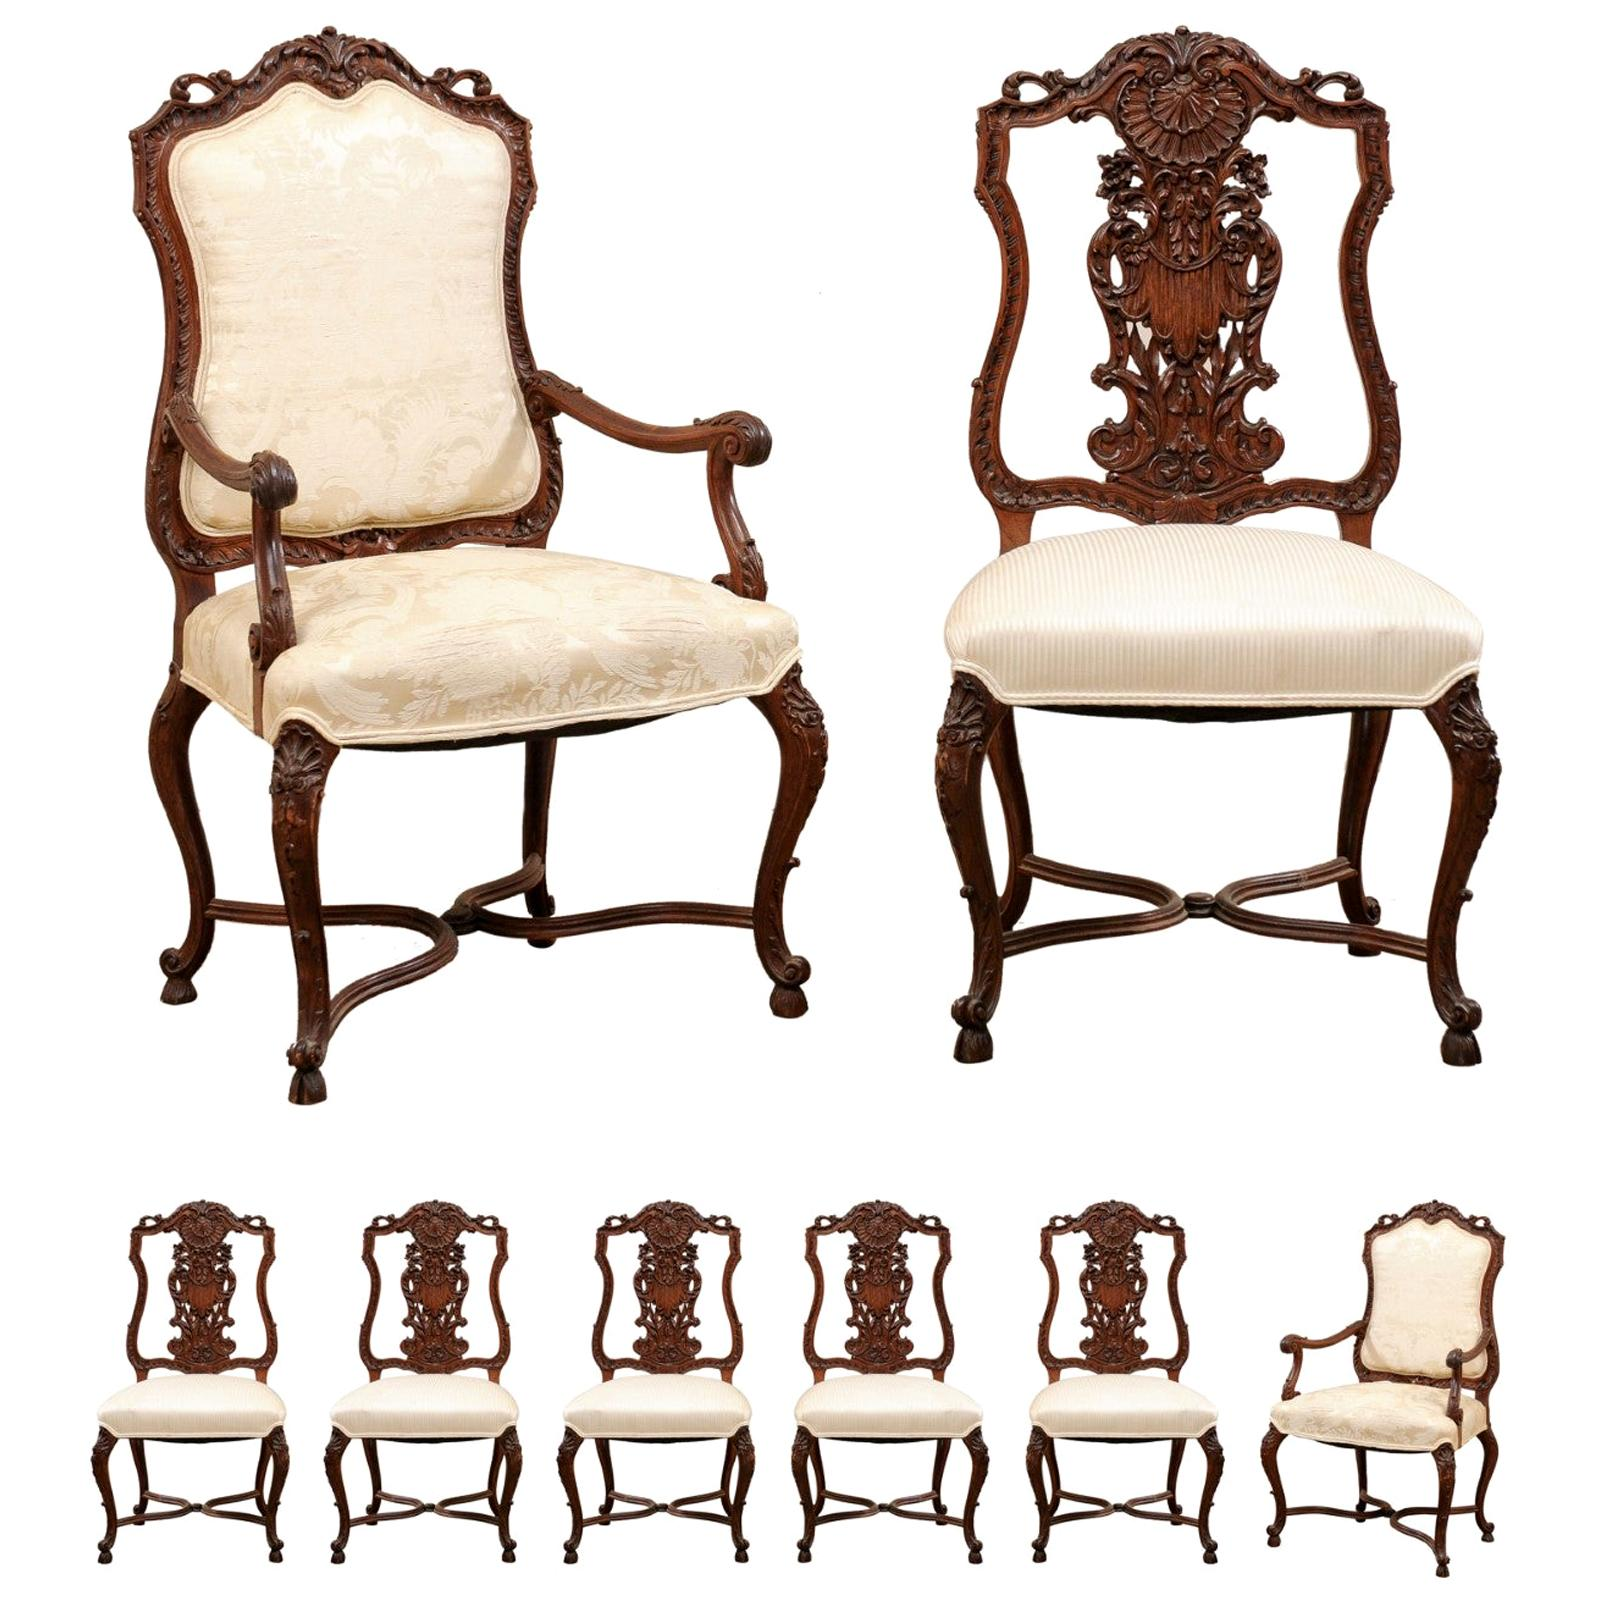 Set of 8 French Dining Chairs with Shield-Shaped Backs, Elaborately Carved